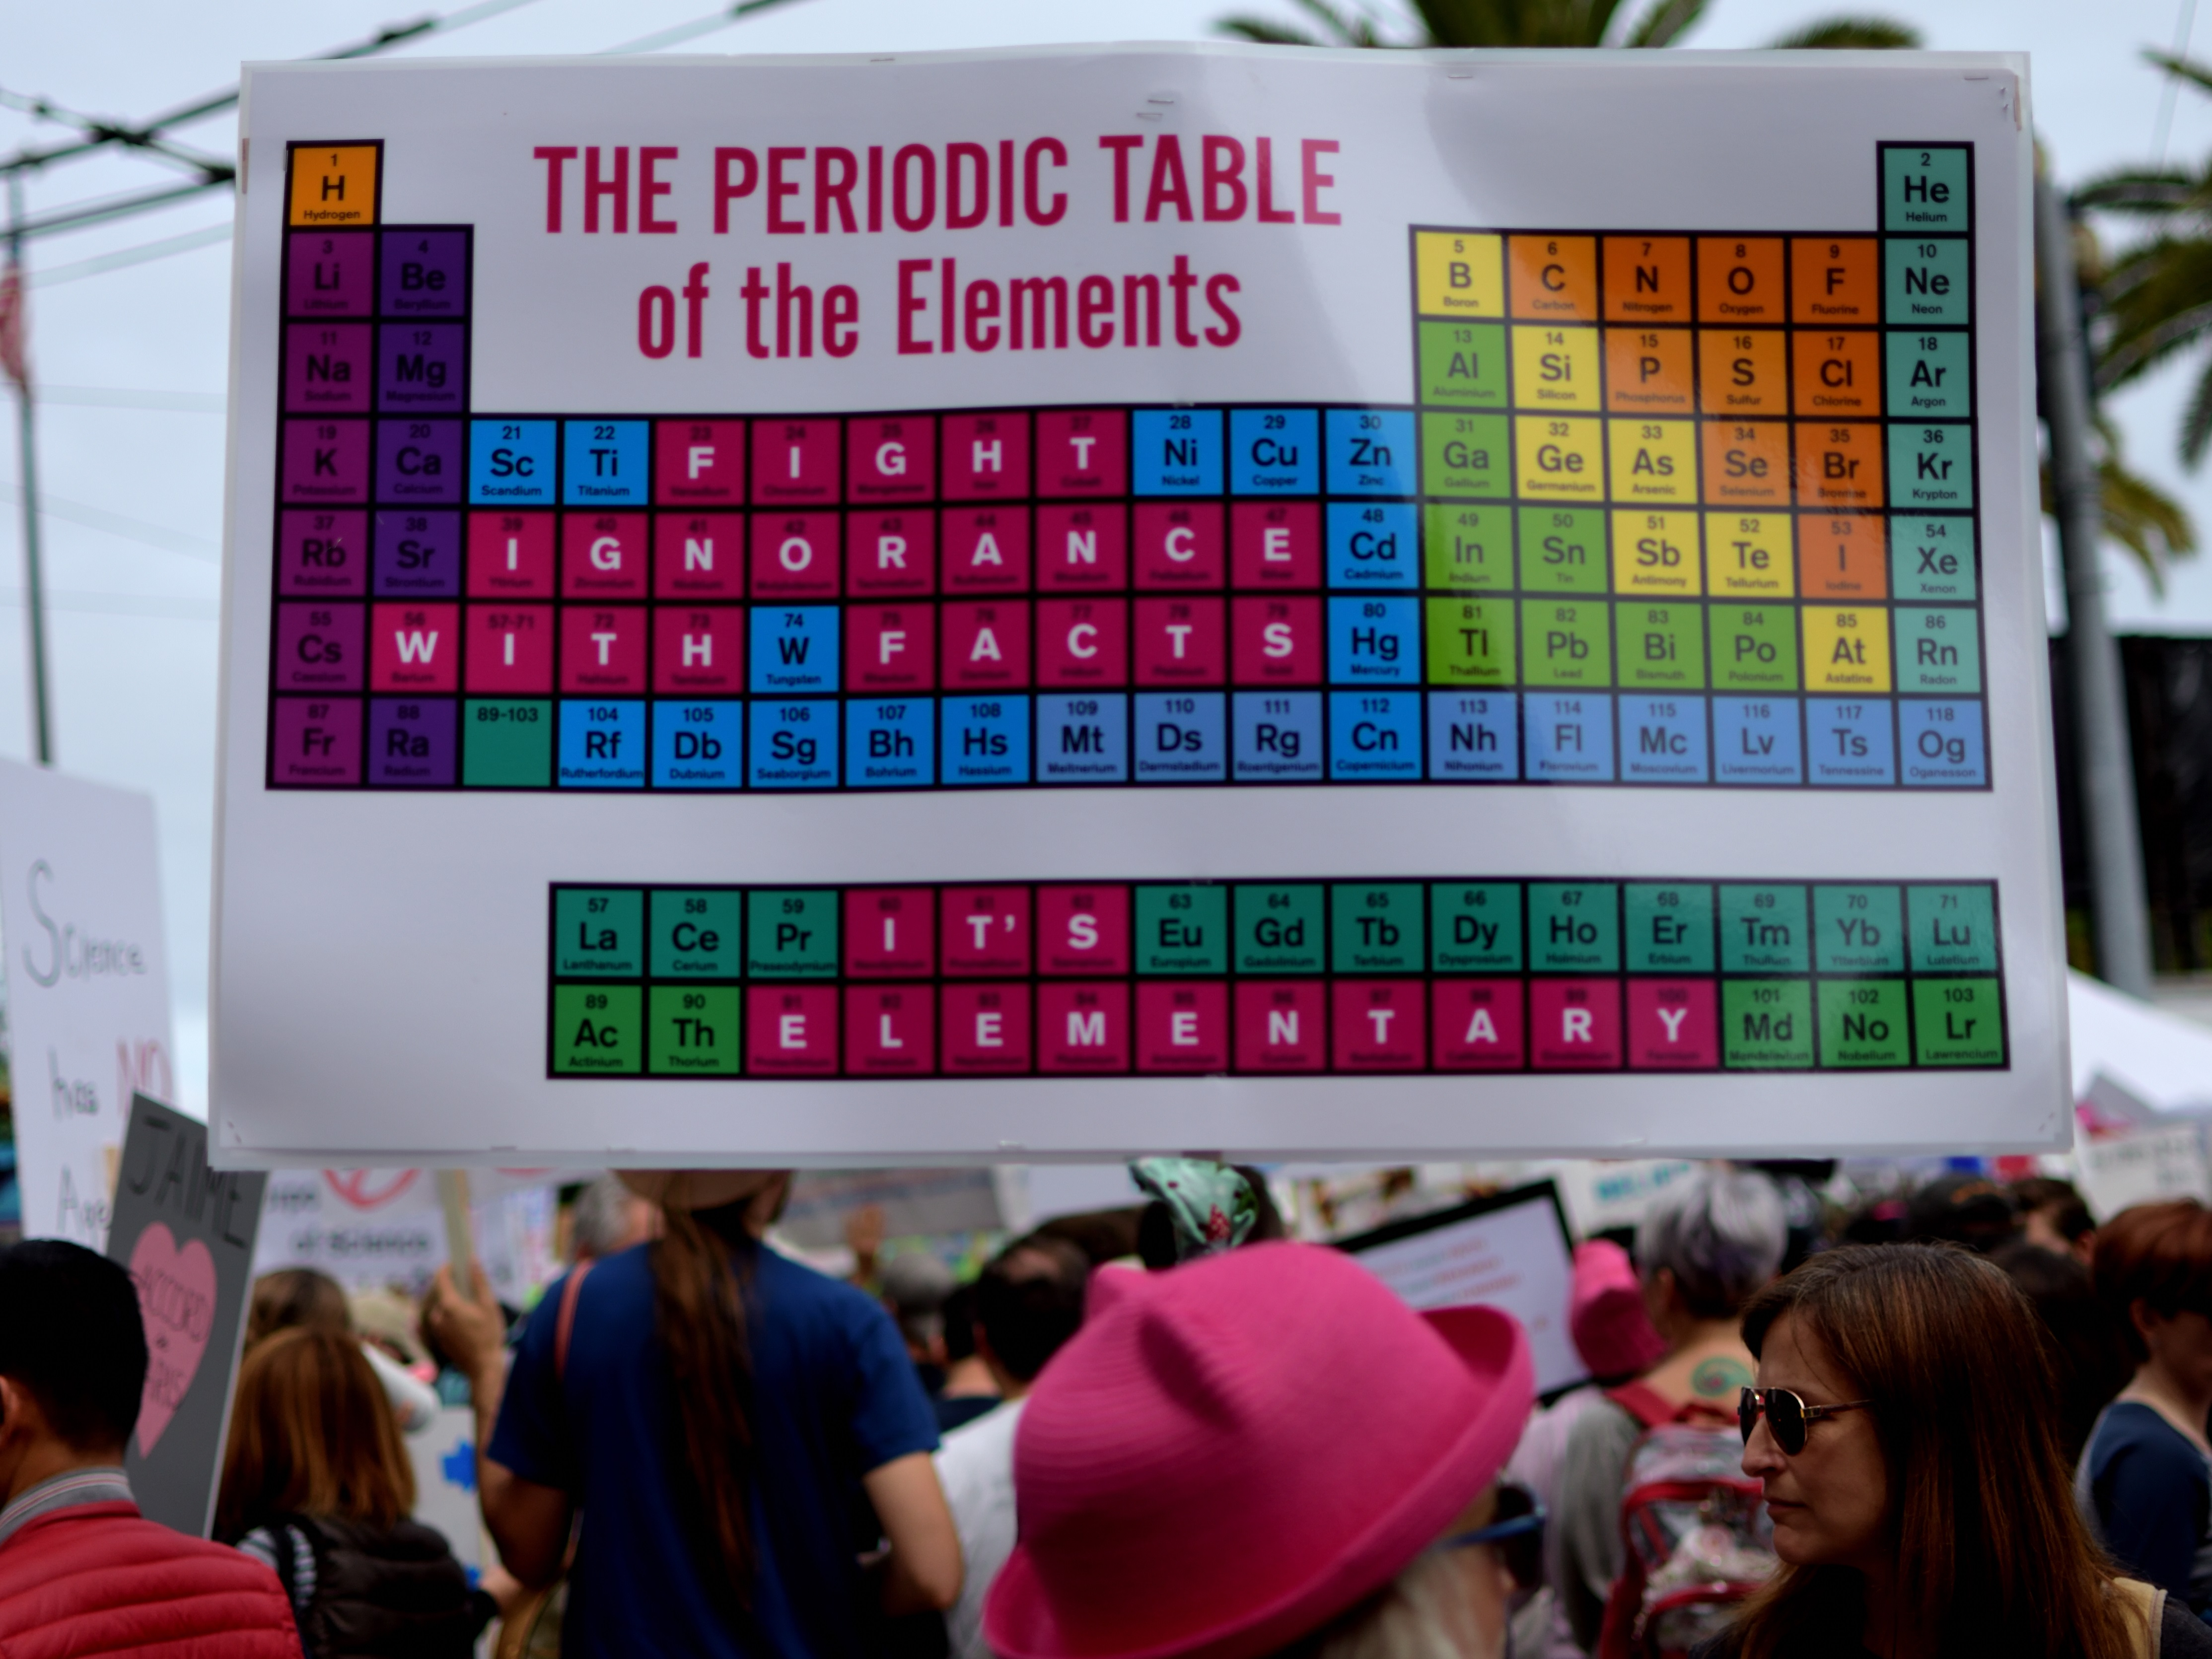 Eines der Poster des March for Science in San Fransisco, Kalifornien am 22. April 2017. Credit: Tom Hilton/Flickr (CC BY 2.0)